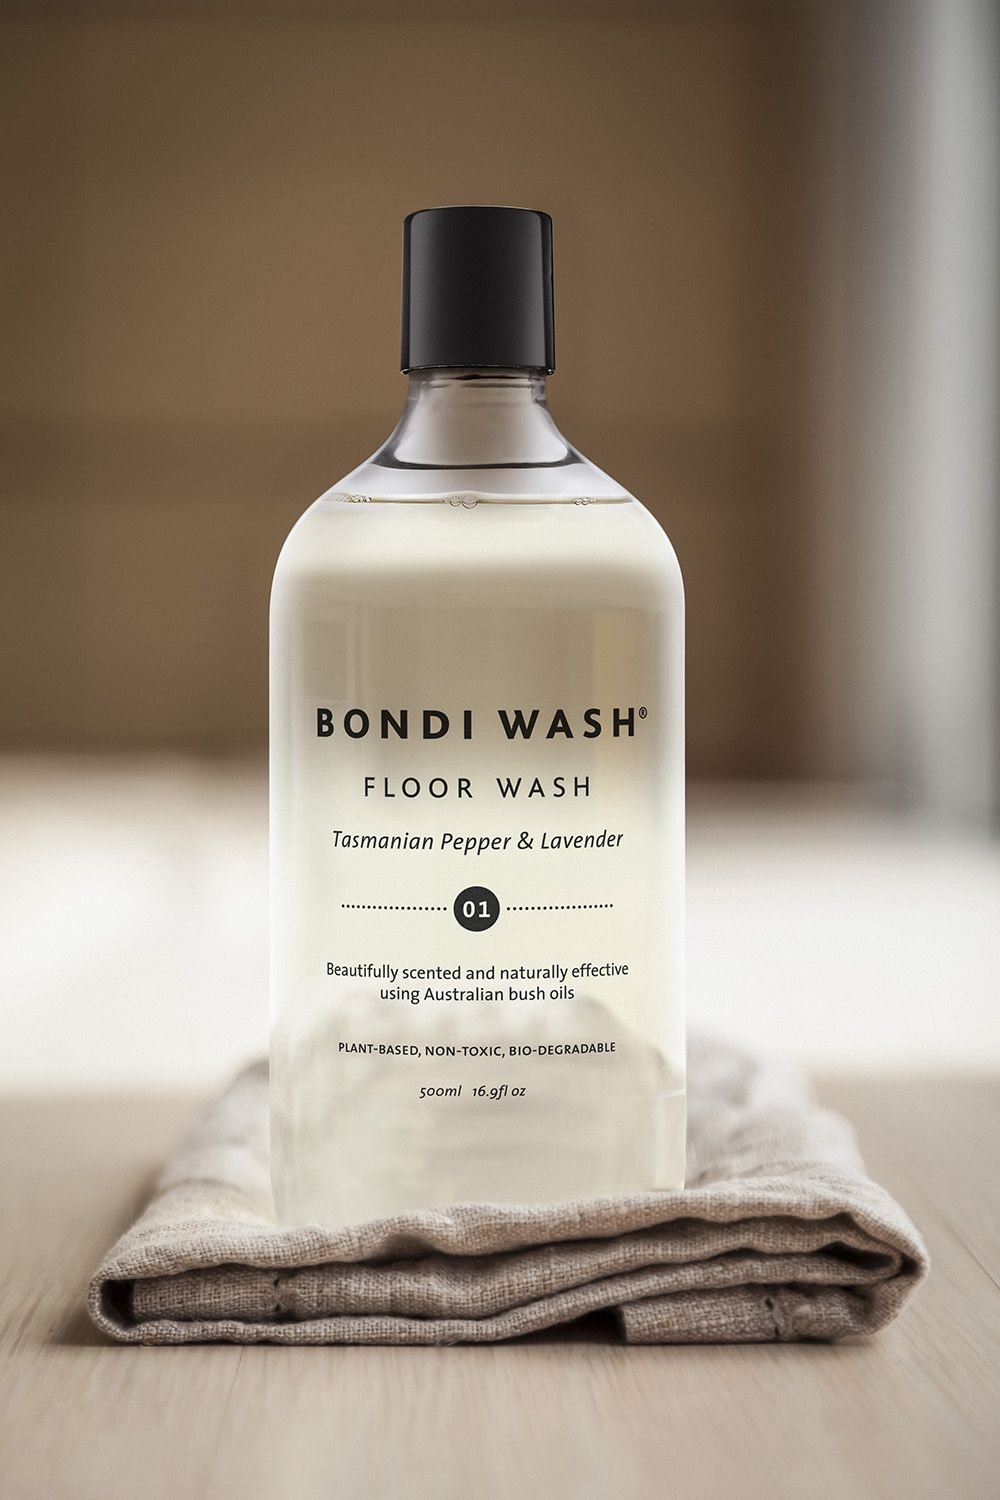 Bondi Wash Brings Natural, Australian Cleaning Products To